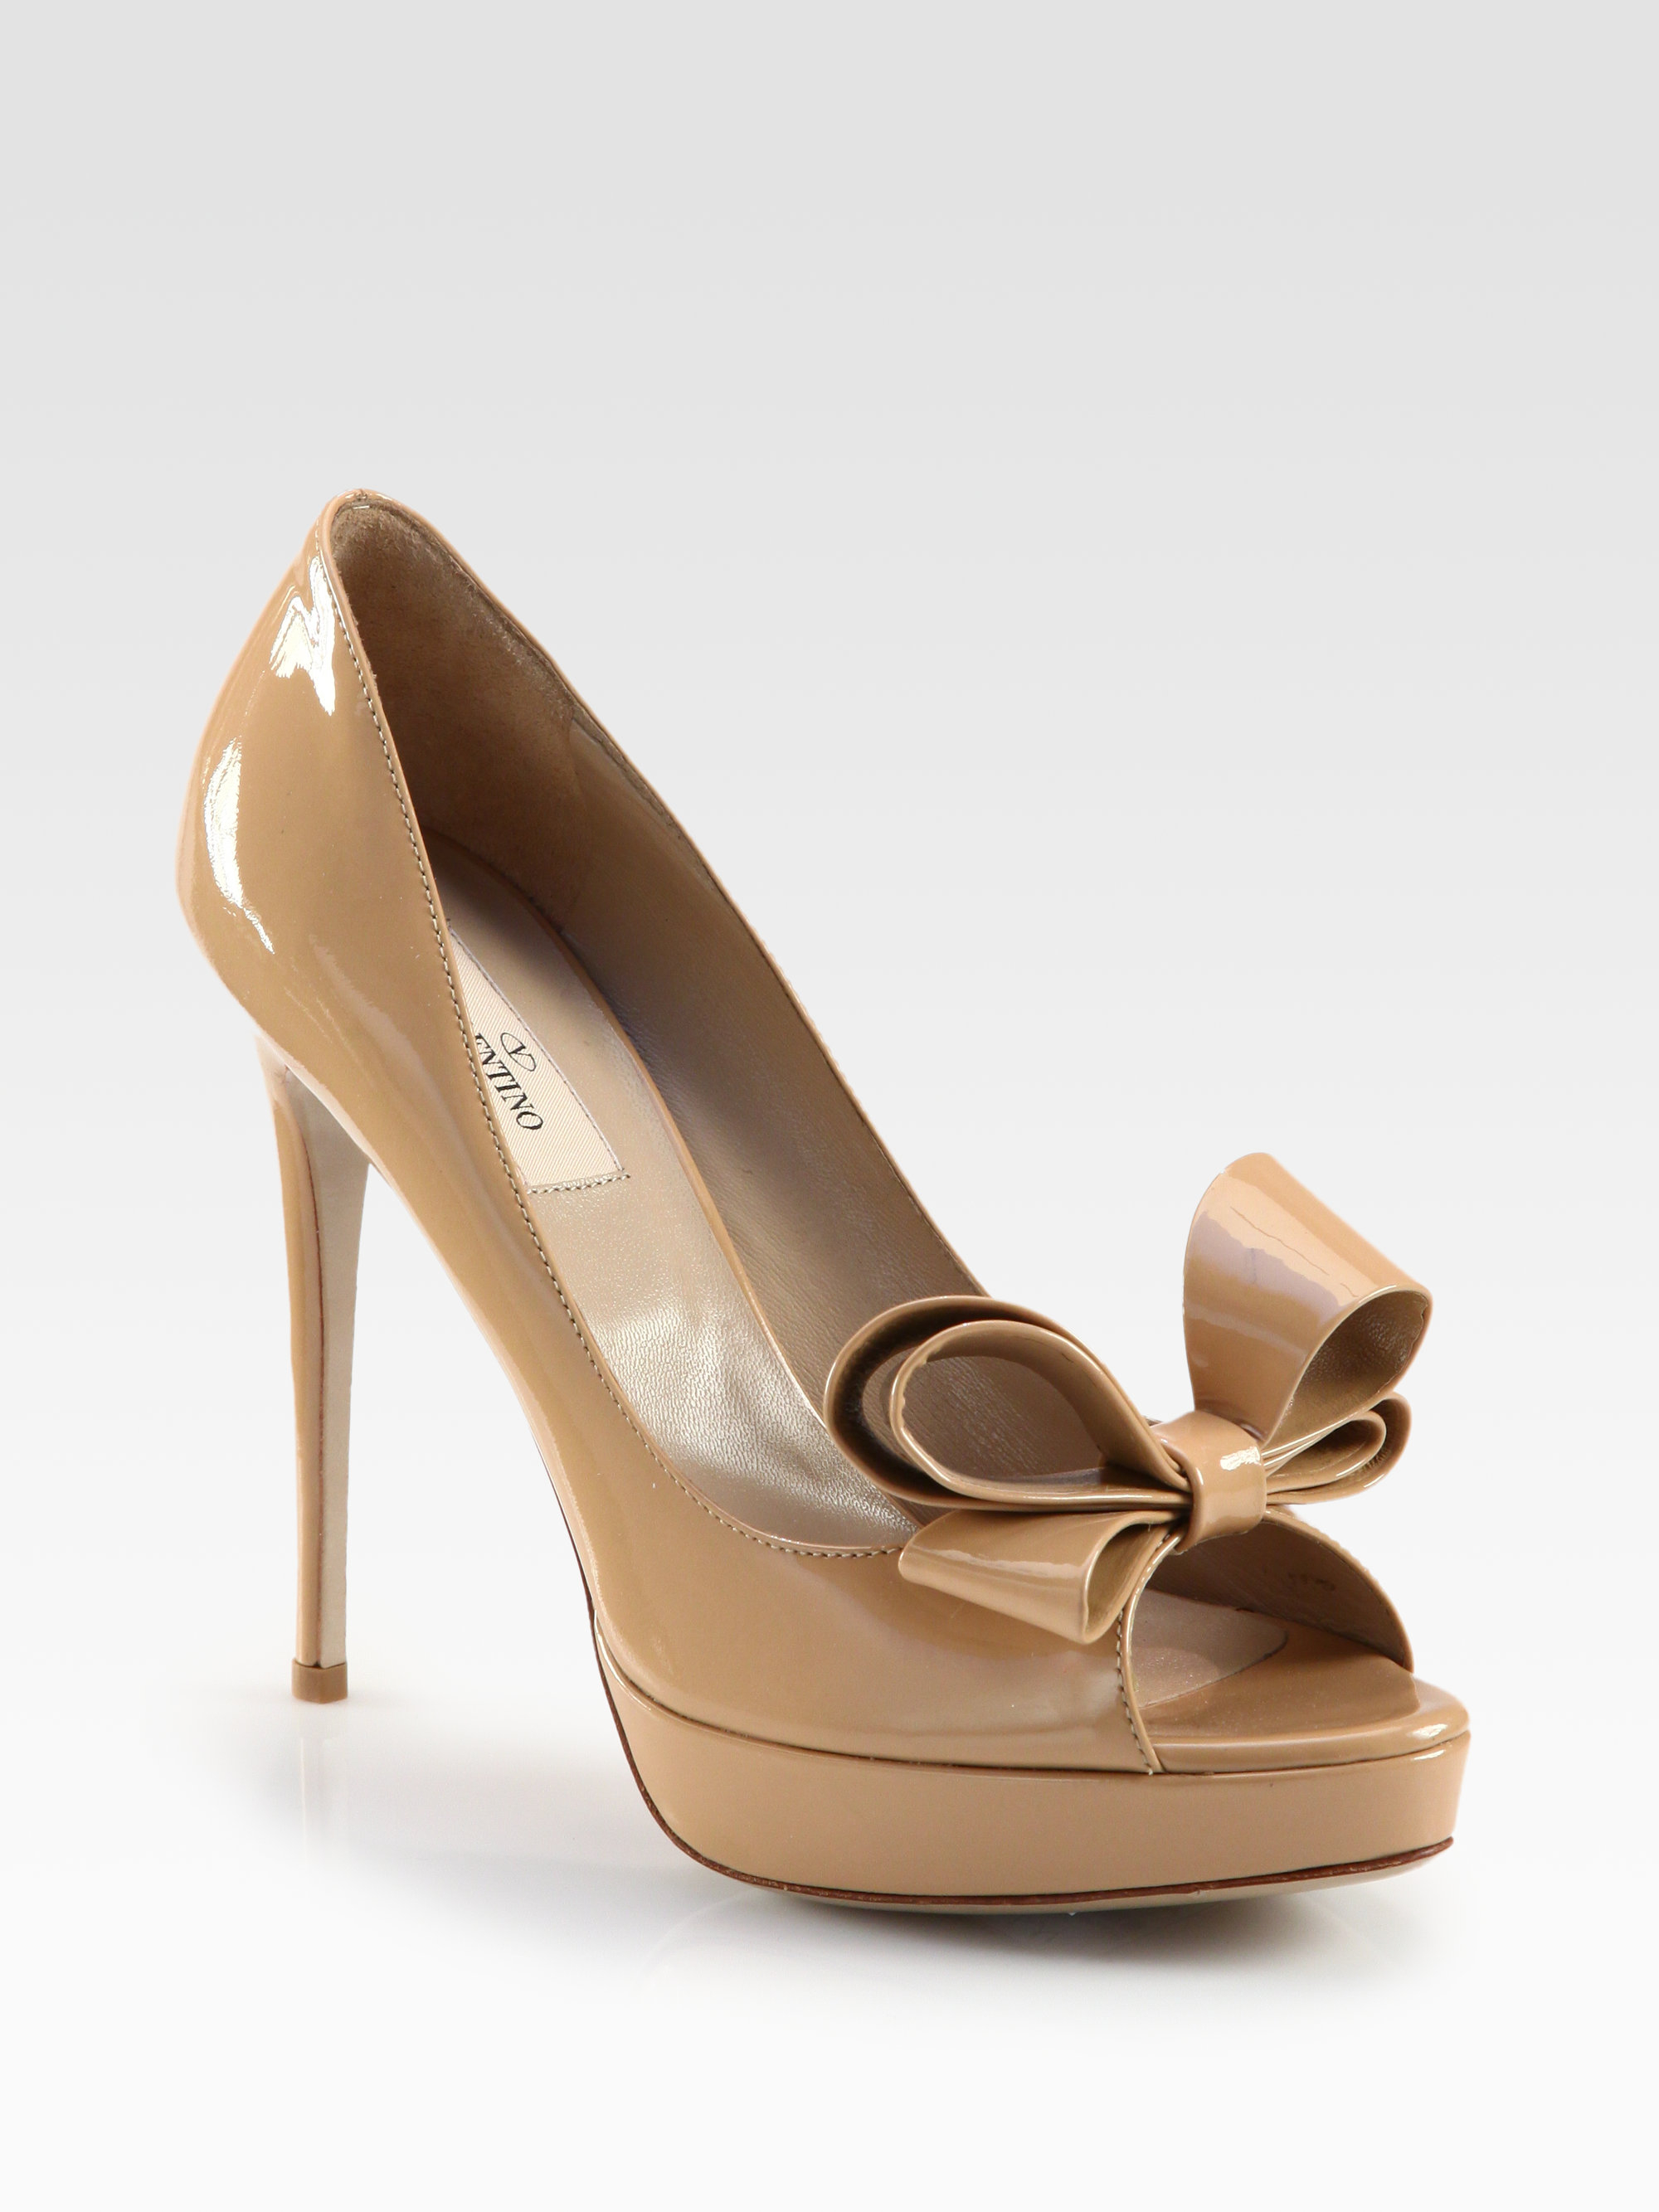 c1c686a9faa9e Gallery. Previously sold at: Saks Fifth Avenue · Women's Valentino Bow  Women's Valentino Bow Pumps